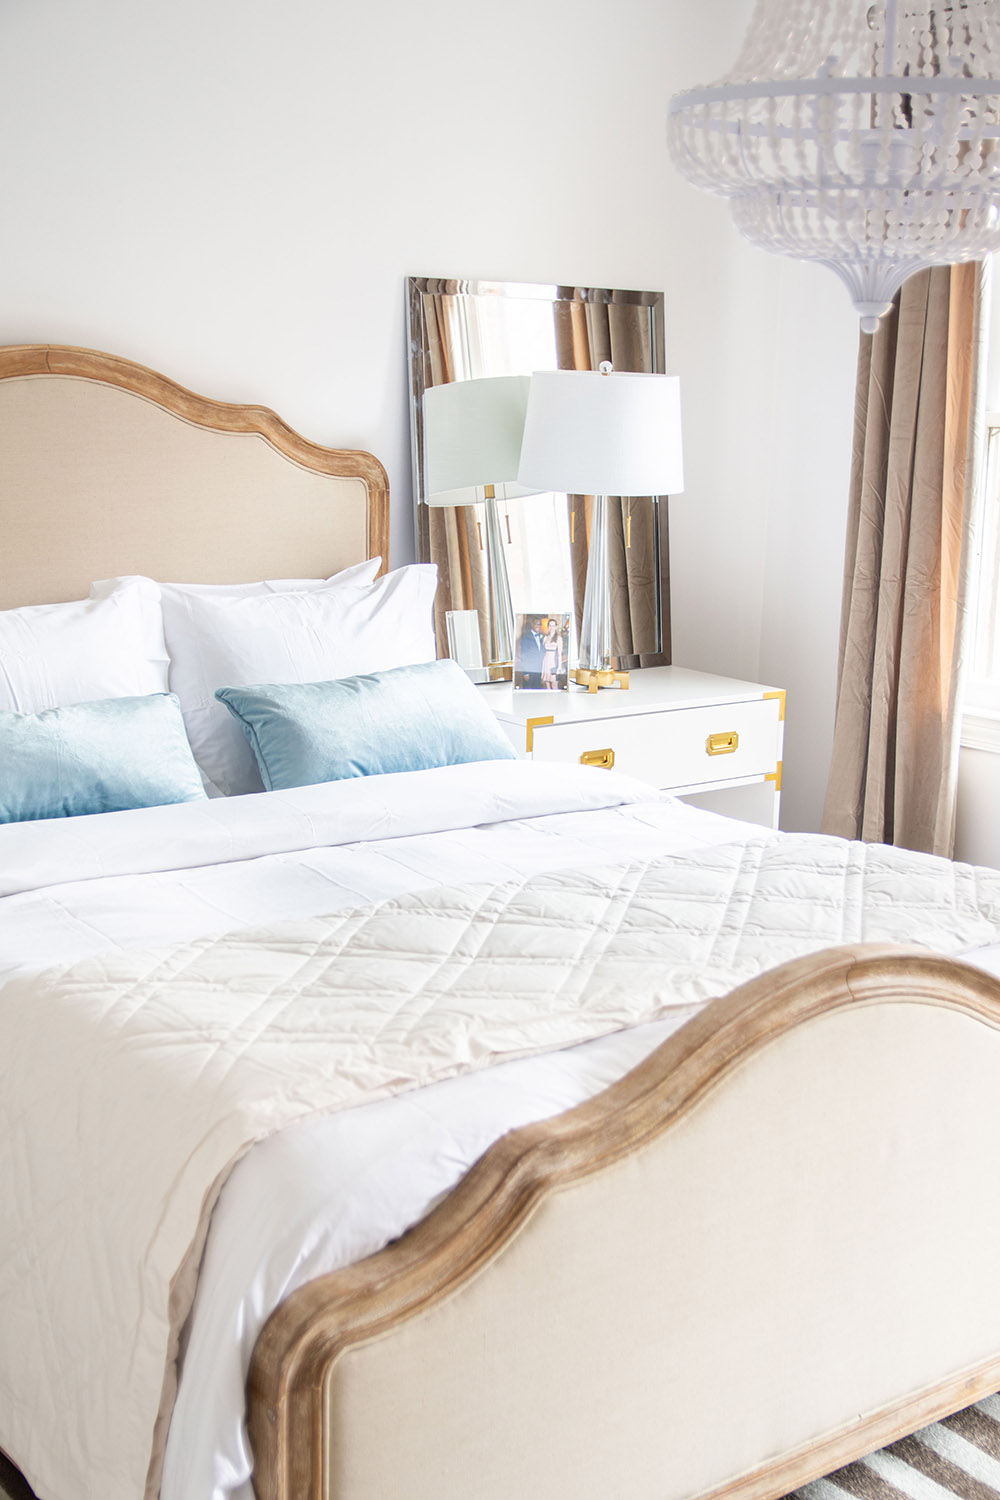 A bedroom scene featuring a bed with ivory bedding, an overhead light fixture and furniture.